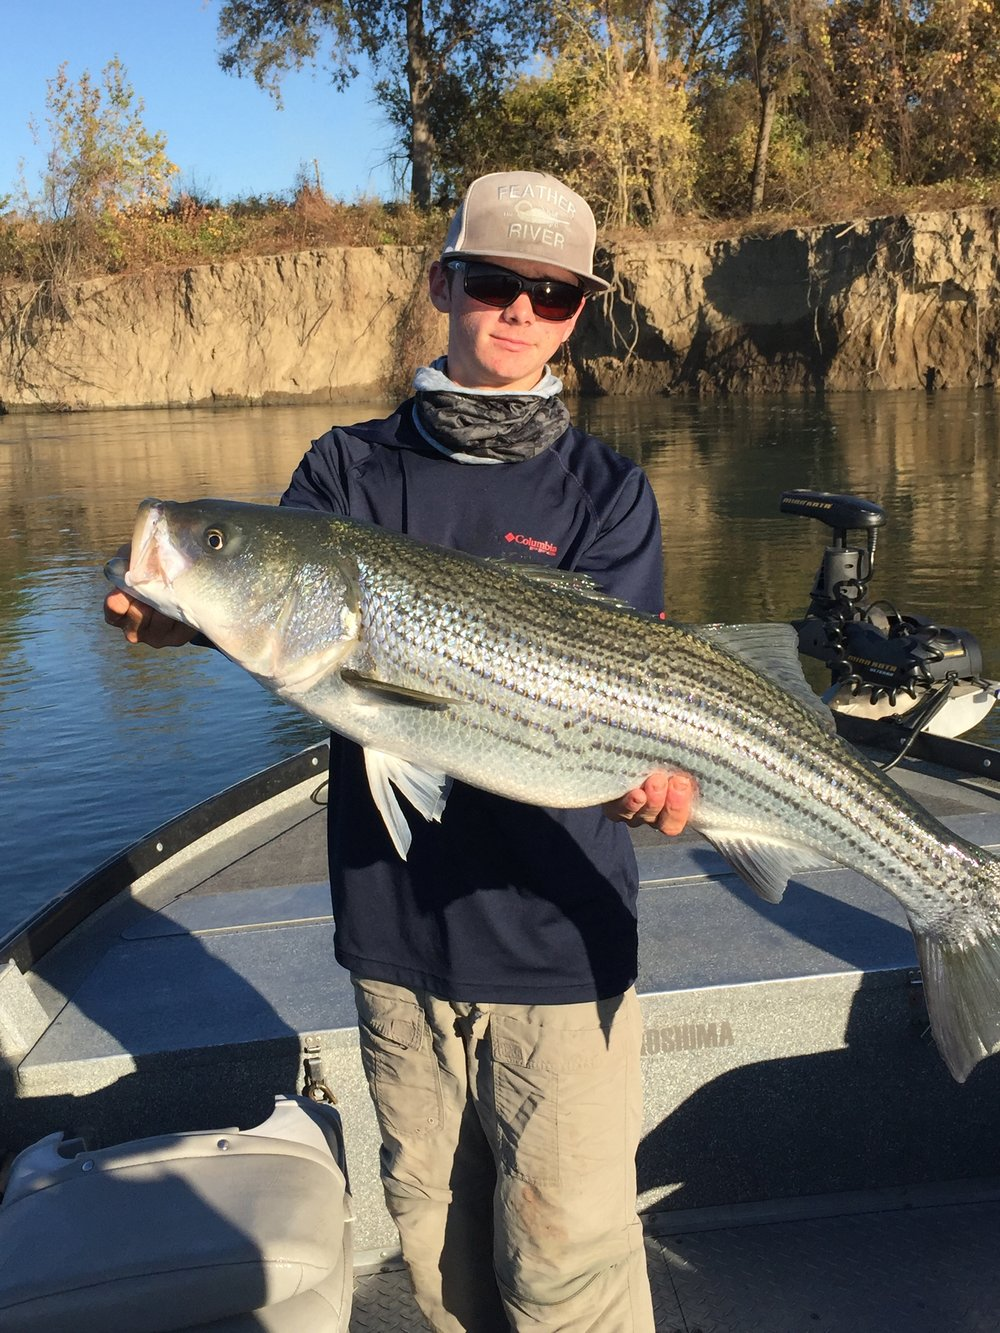 This striped bass held by Ryan Tripp is the small half of a modest 58# pound limit caught with Billy Driessen of Driessen's Guide Service on the Sacramento River earlier this week.